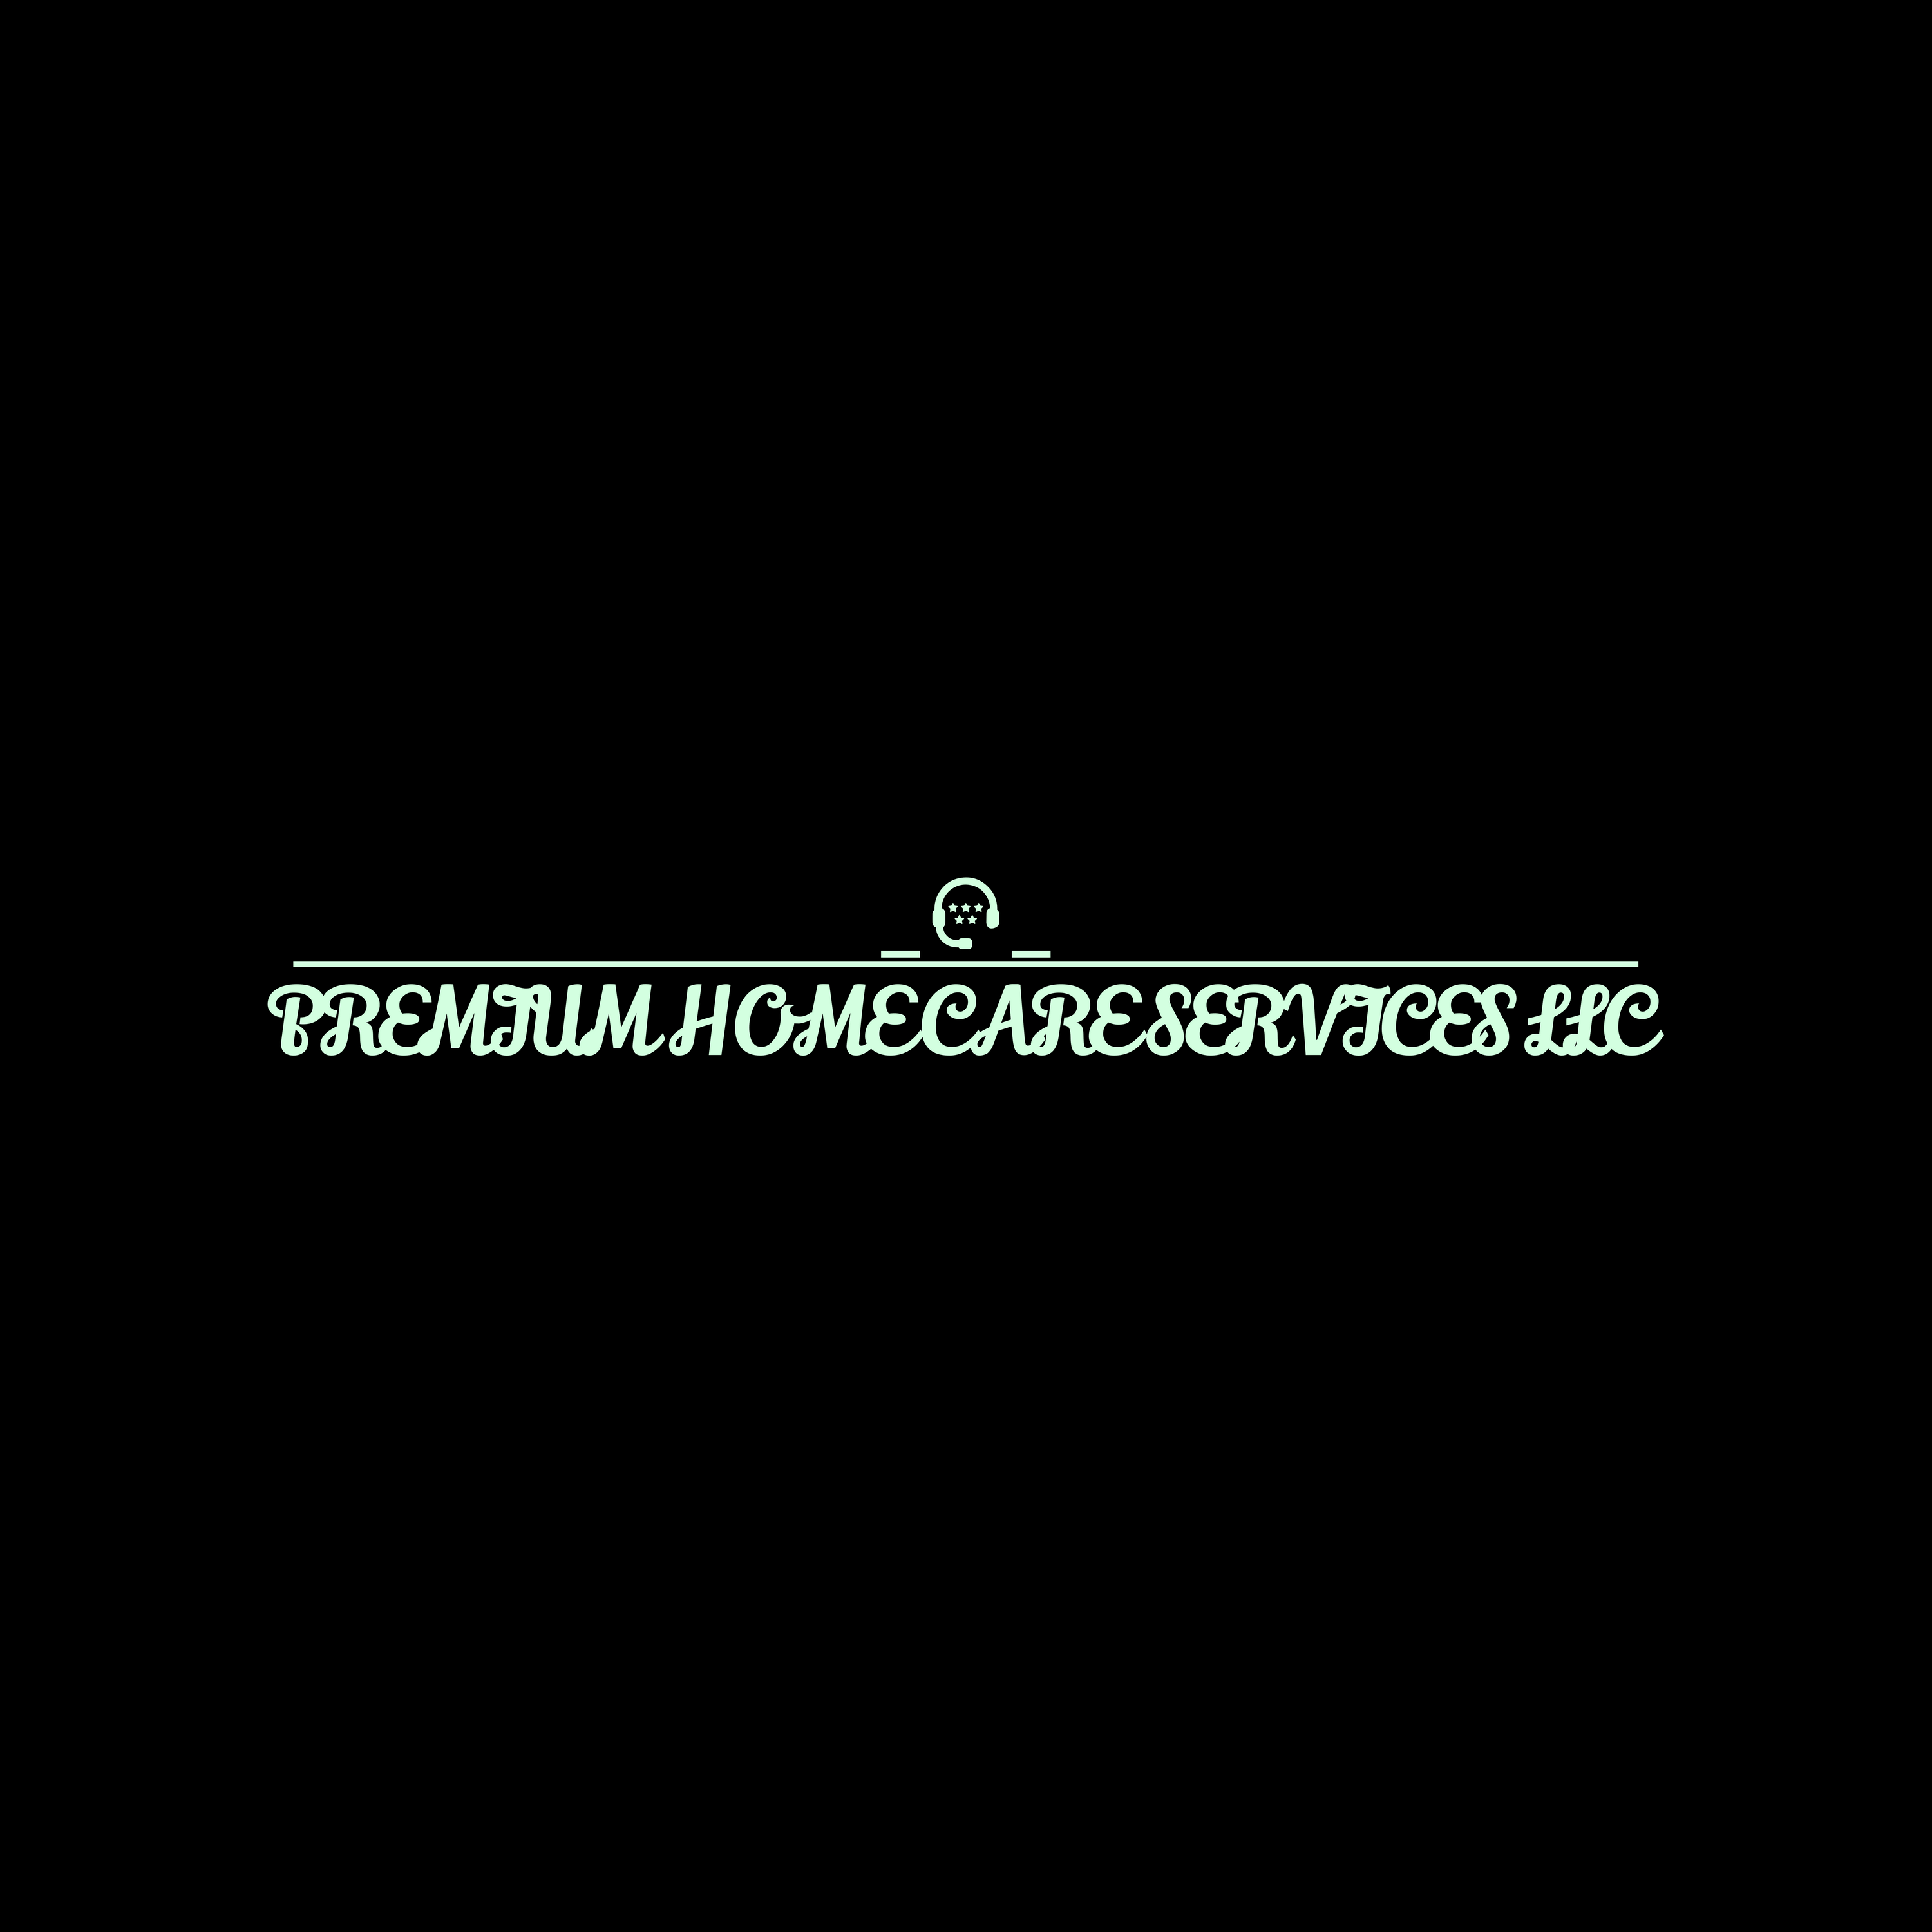 Premium Home care Services LLC